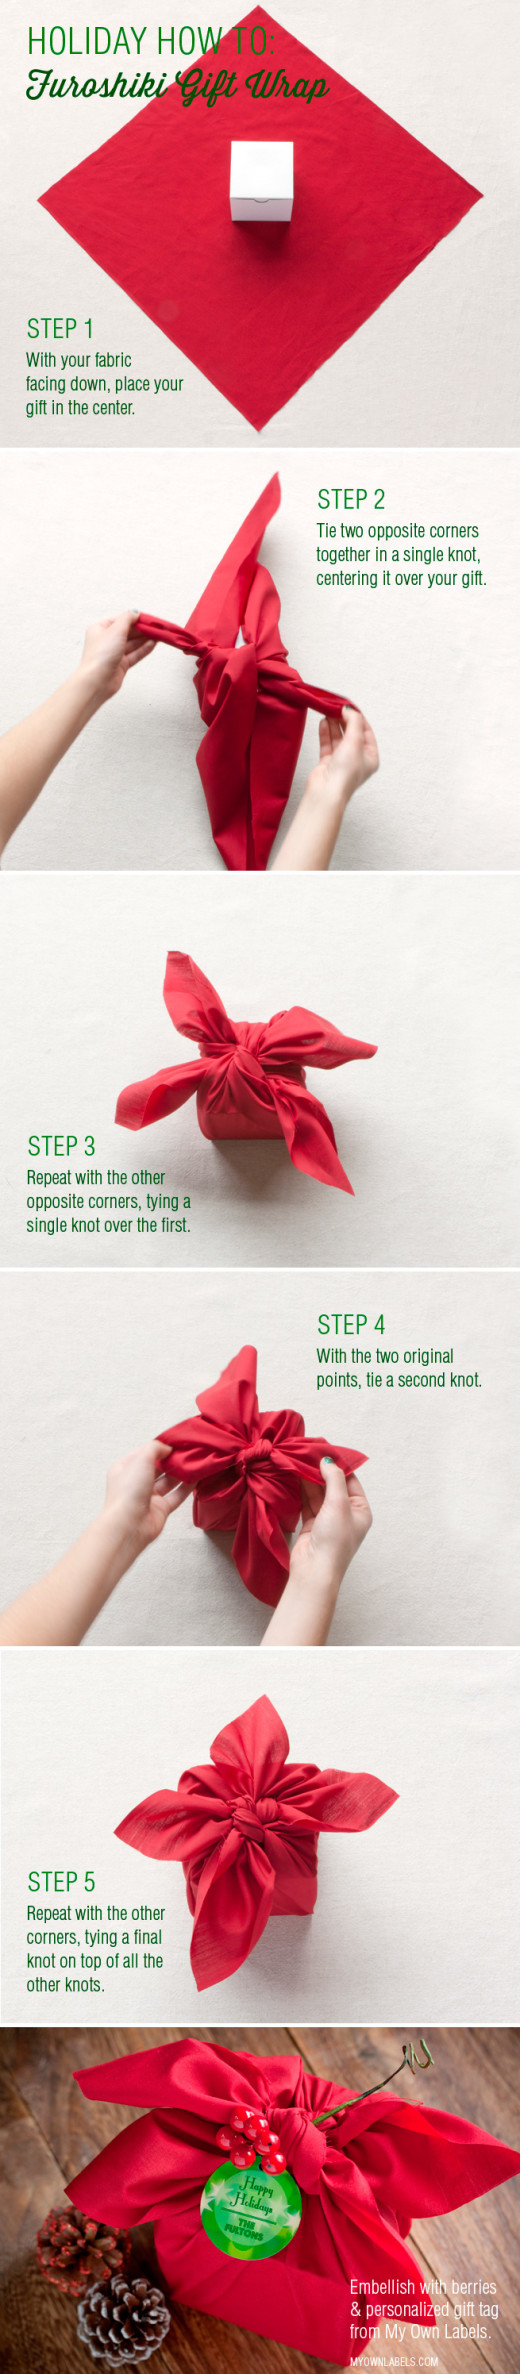 Holiday How-To: Furoshiki Gift Wrap